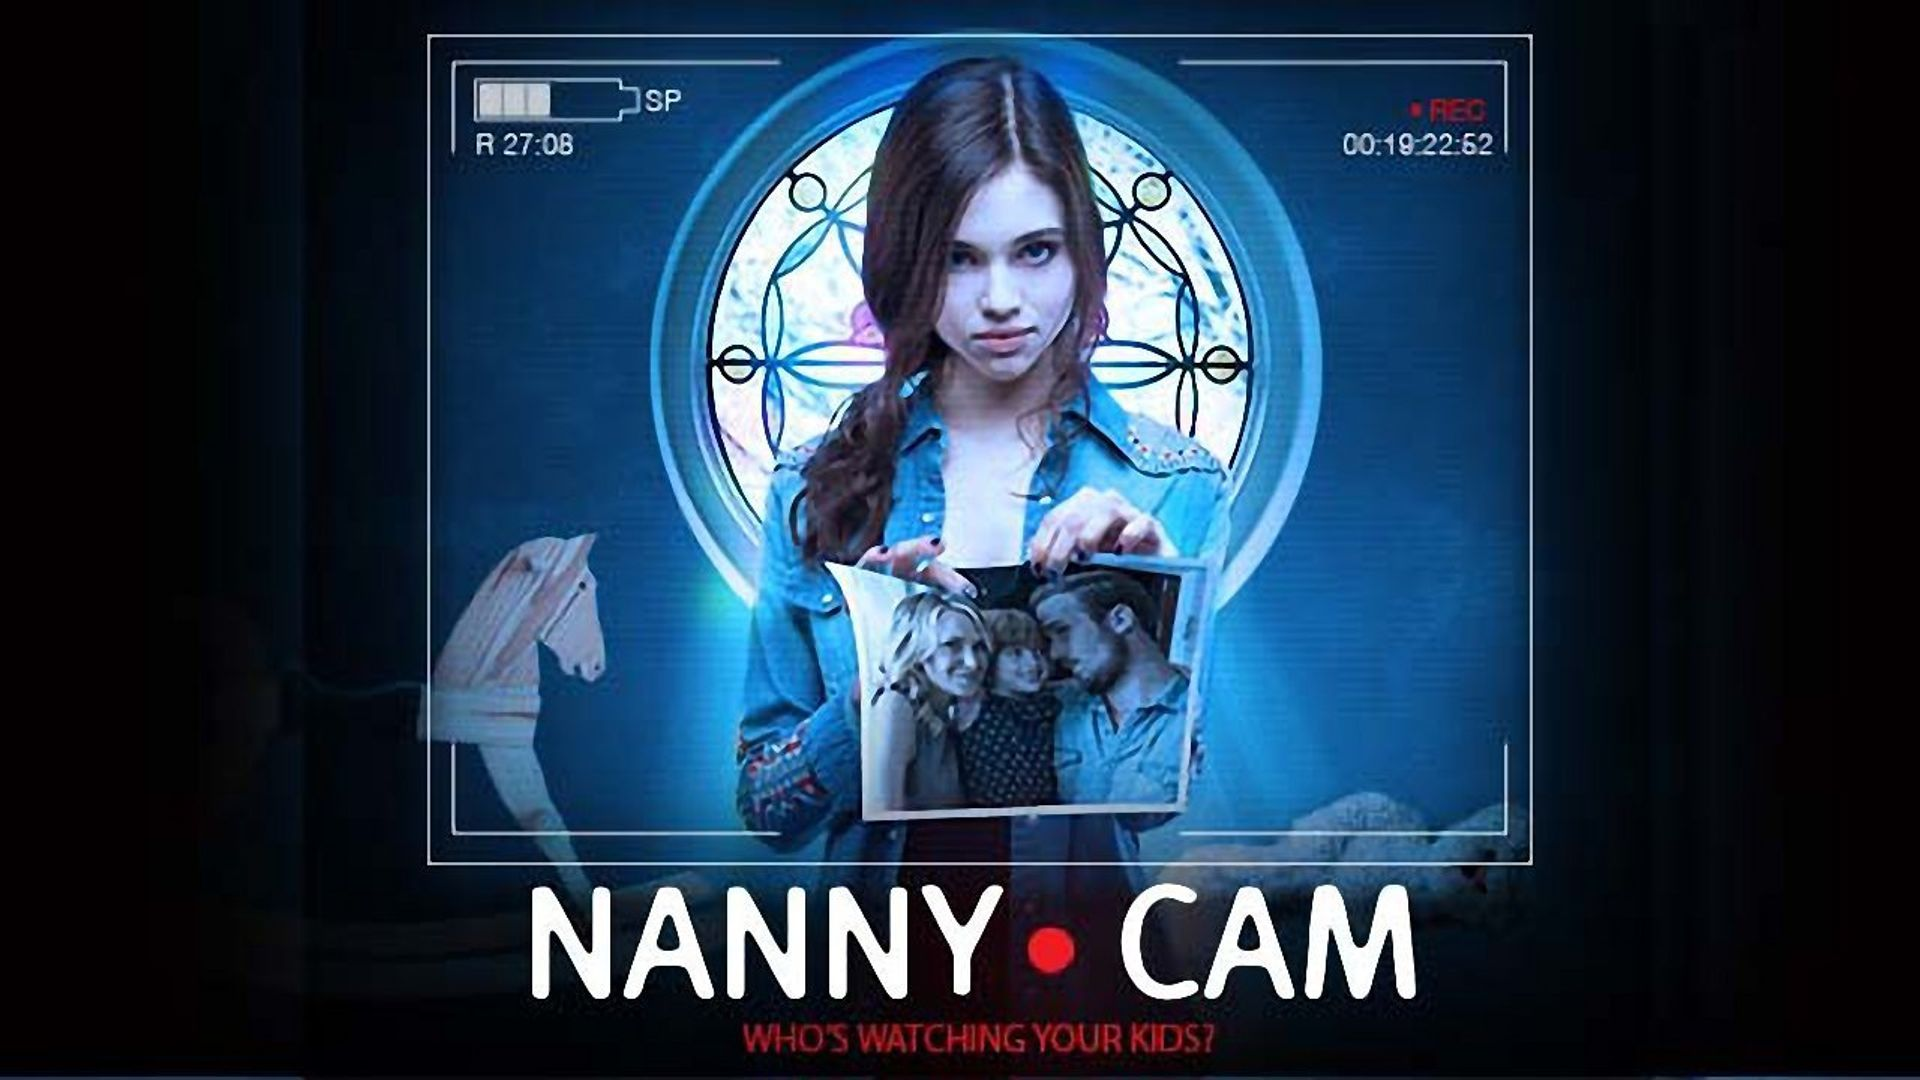 Nanny Cam 2014 Where To Watch It Streaming Online Available In The Uk Reelgood